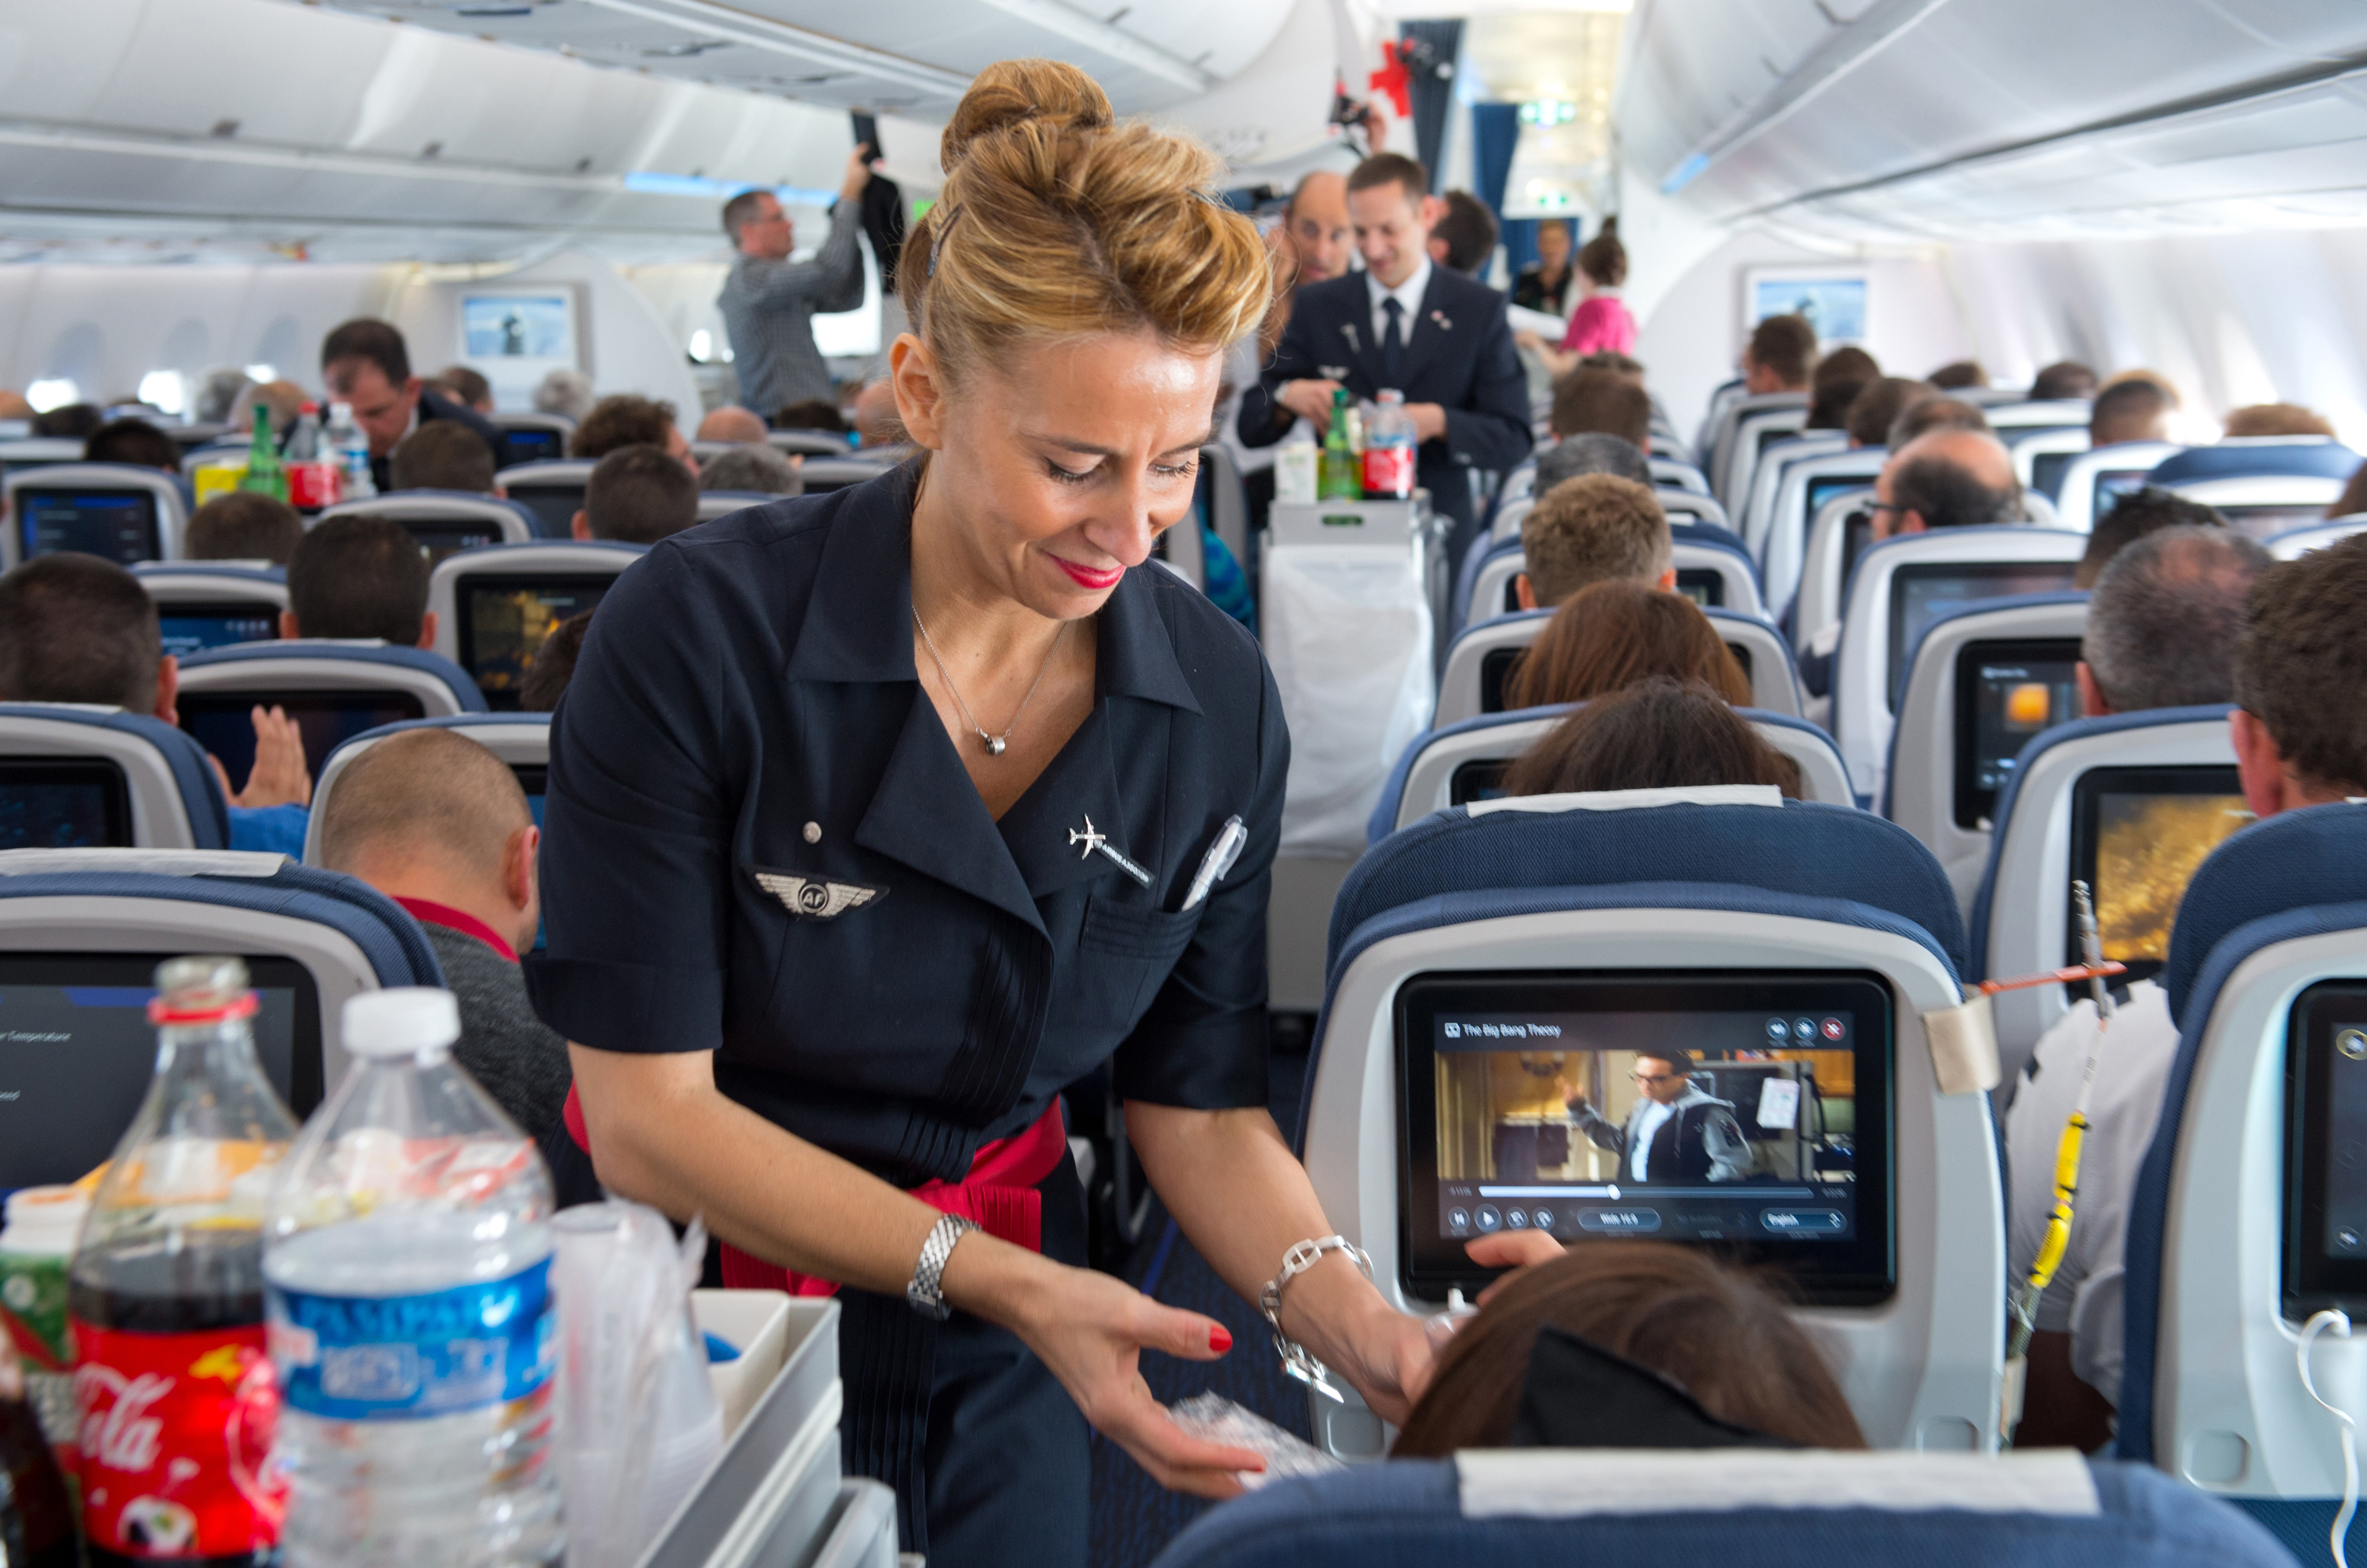 The latest Airbus provides more opportunities for passengers to connect, and that can be a threat